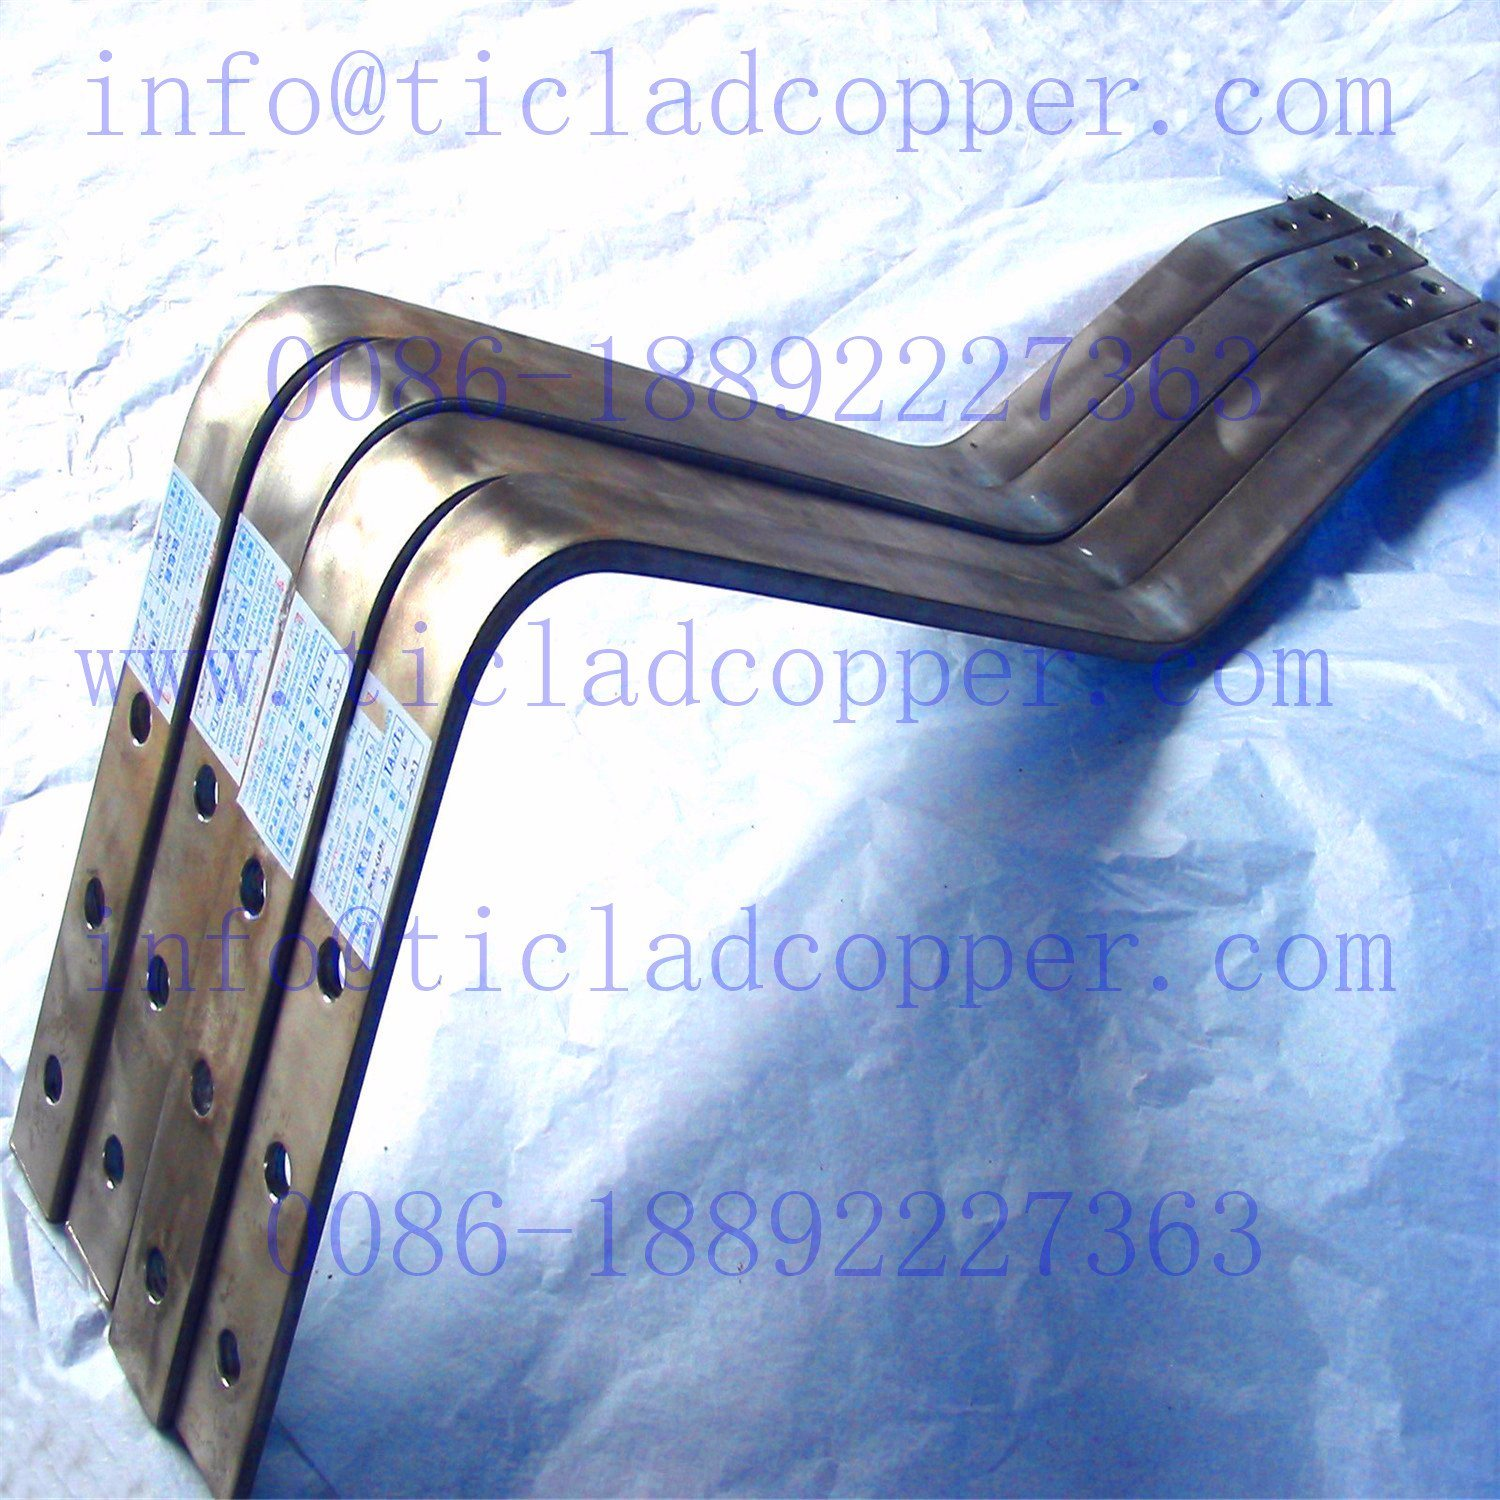 Titanium Clad Tu 2 Copper /Oxygen Free Copper Busbar for Galvanizing Lines pictures & photos